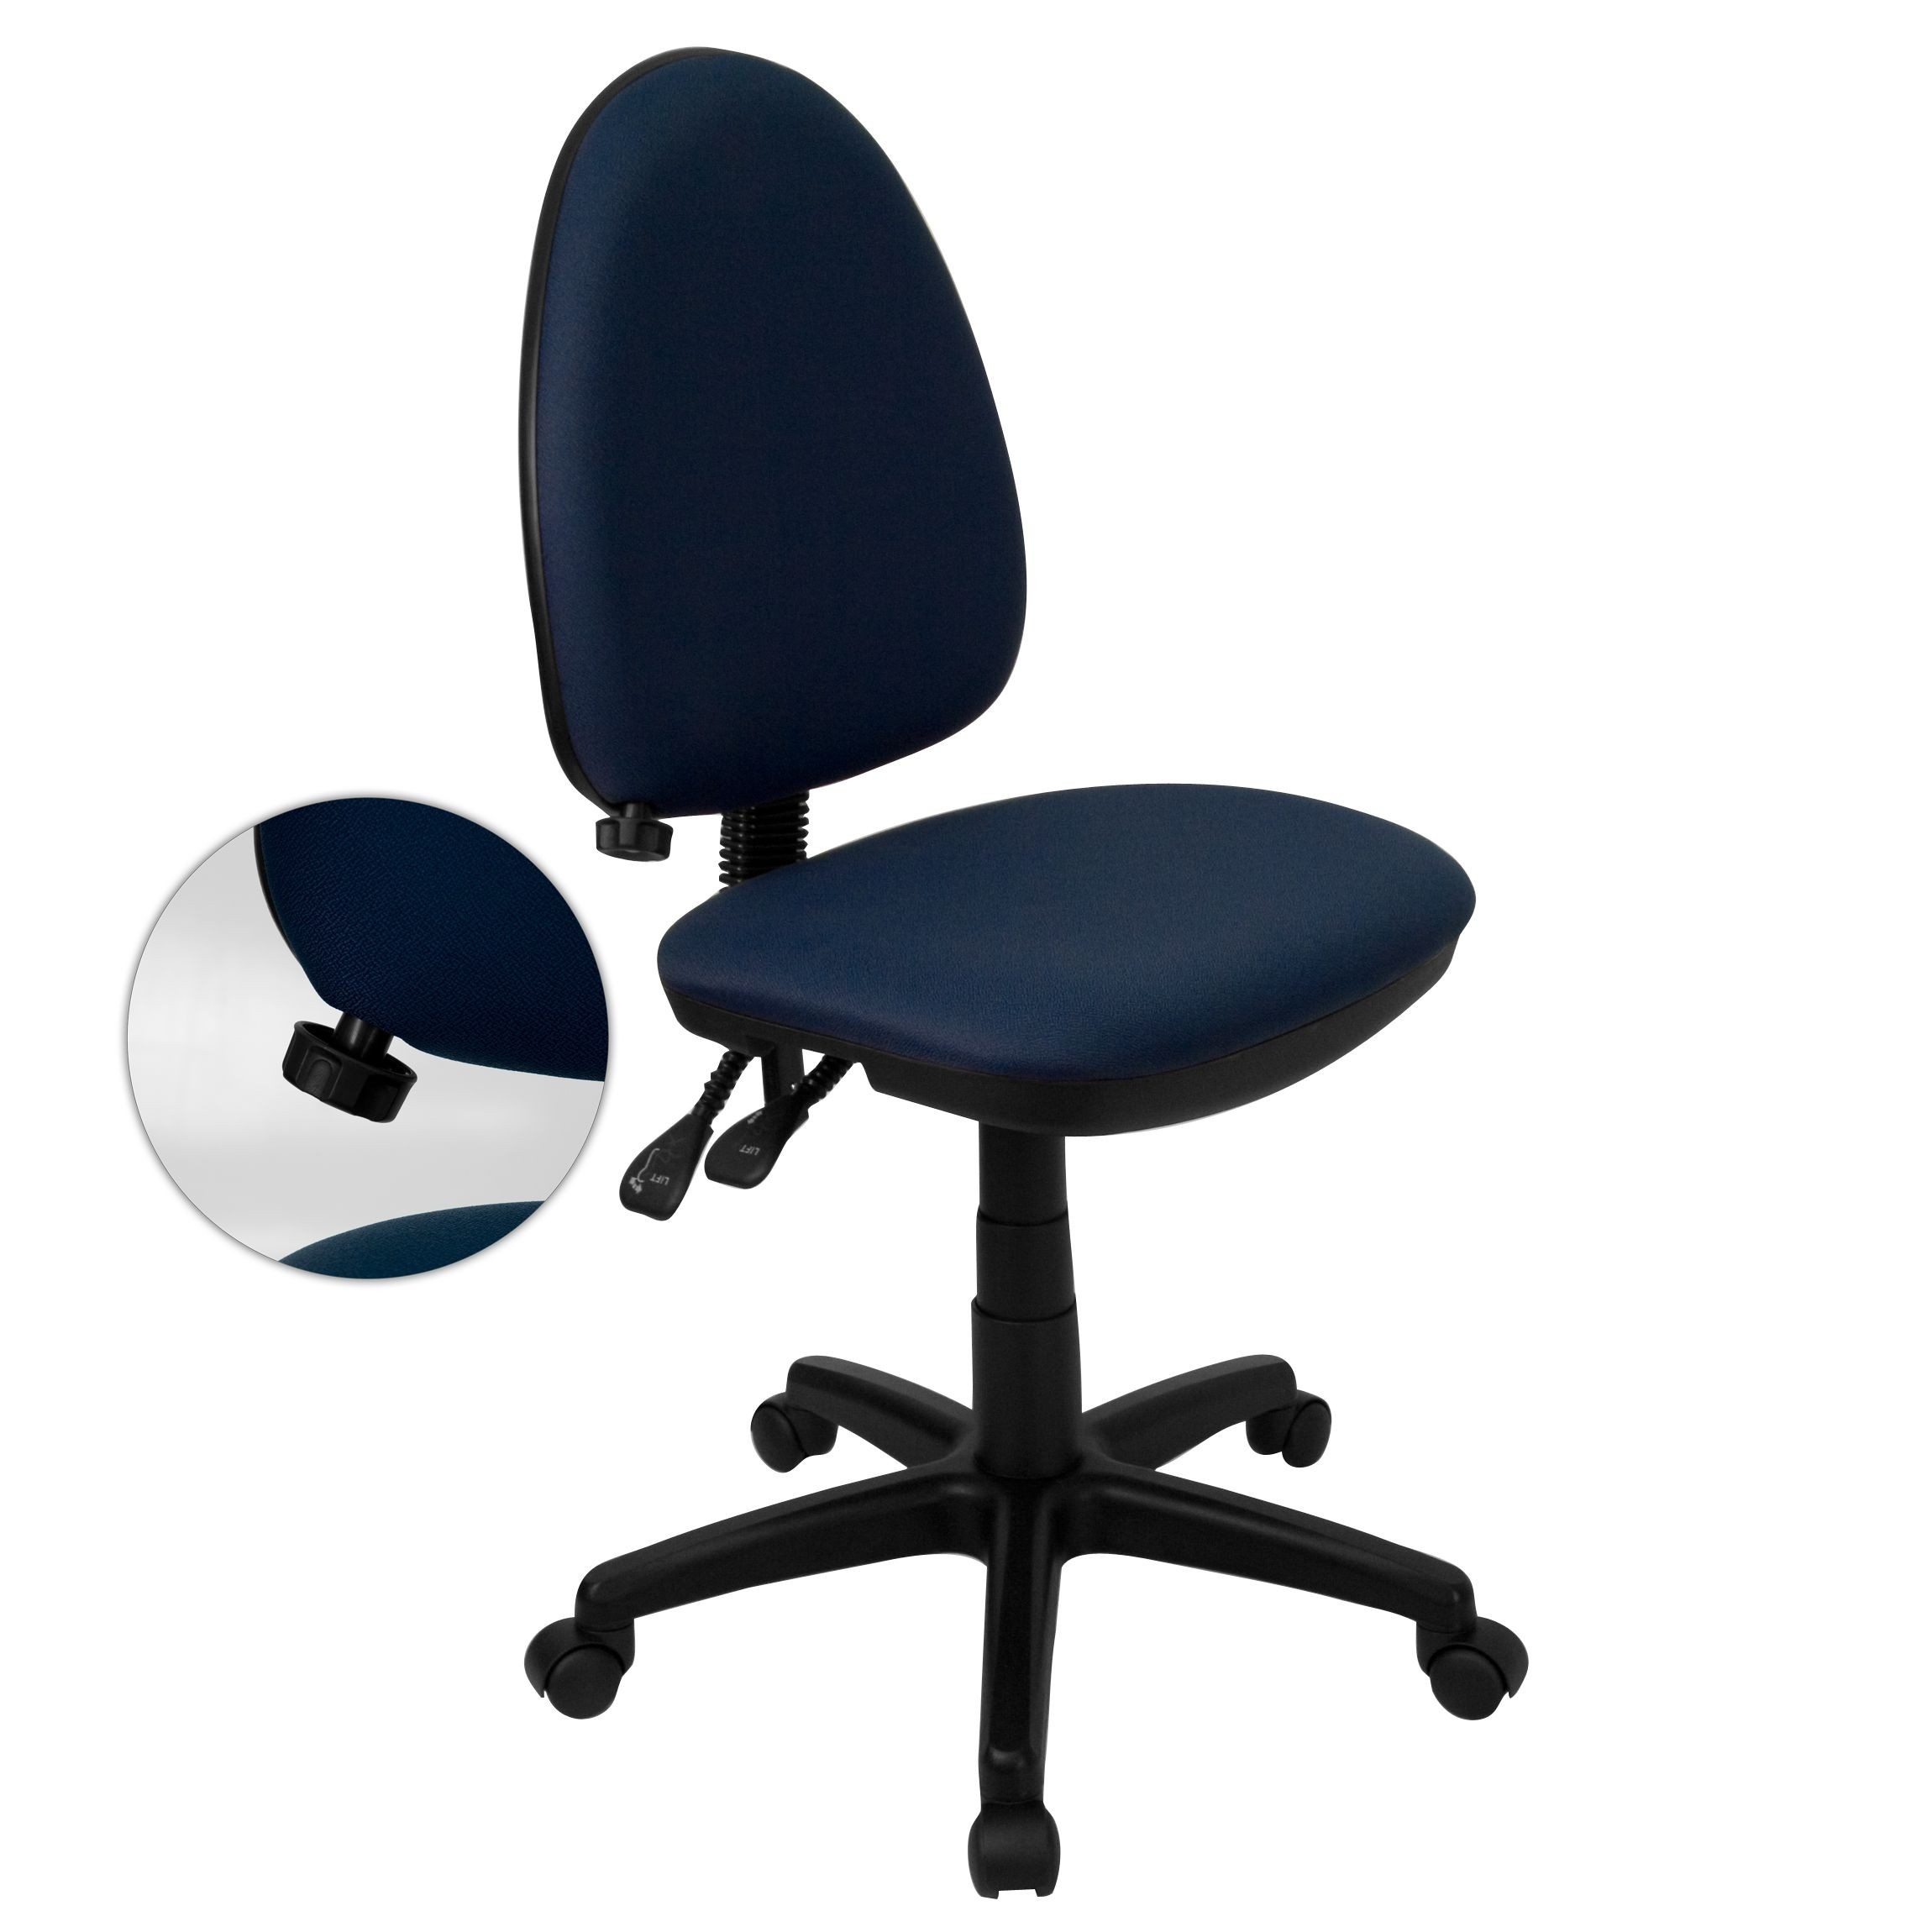 Navy Blue Fabric Multi-Function Task Chair with Adjustable Lumbar Support